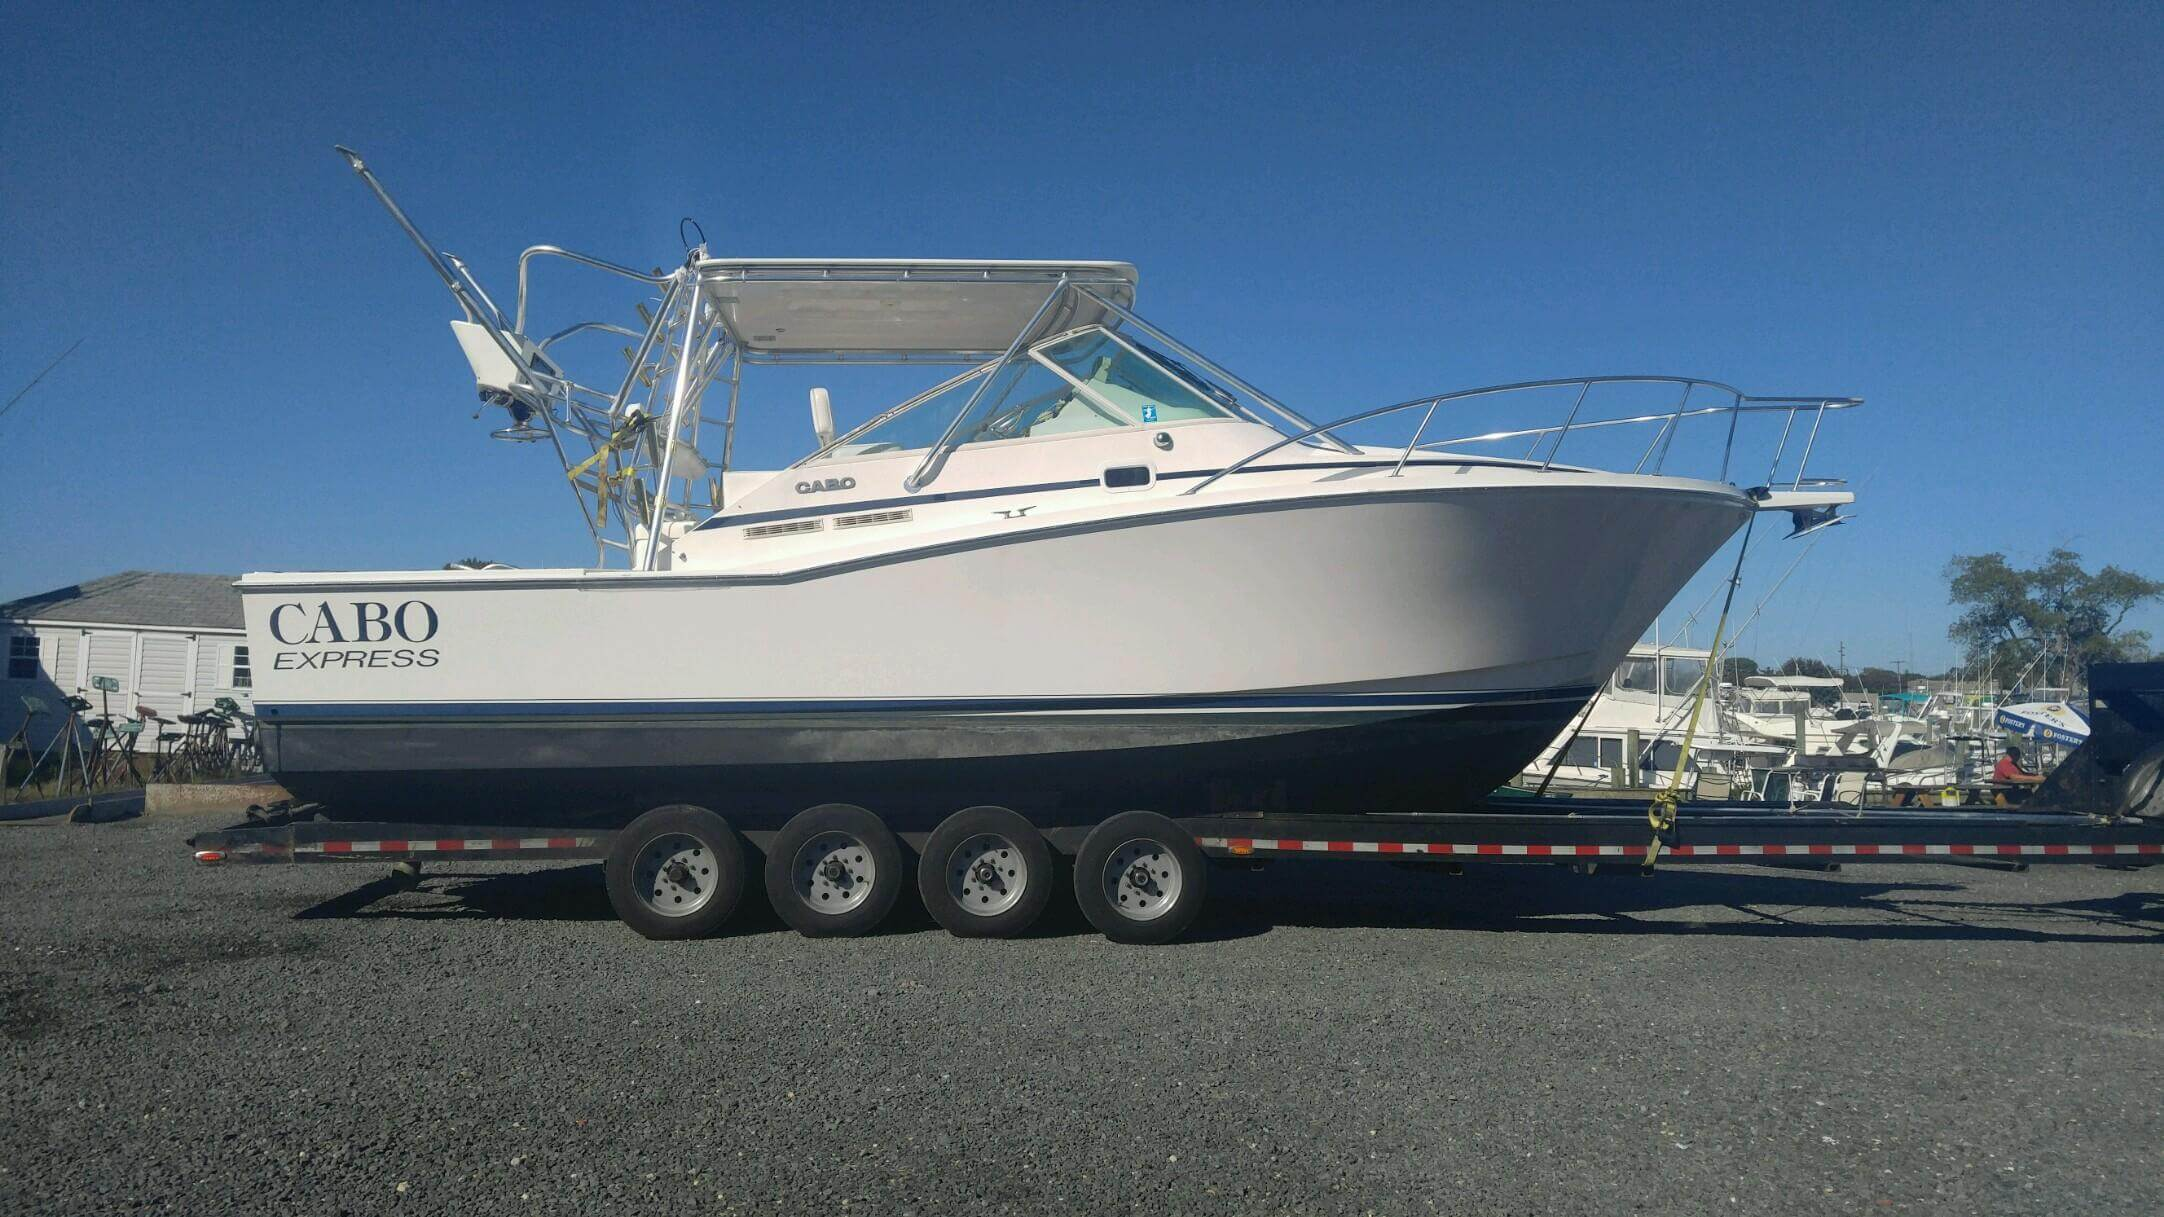 We will transport it, hiring a pro for boat transport transport a boat from fl to ny